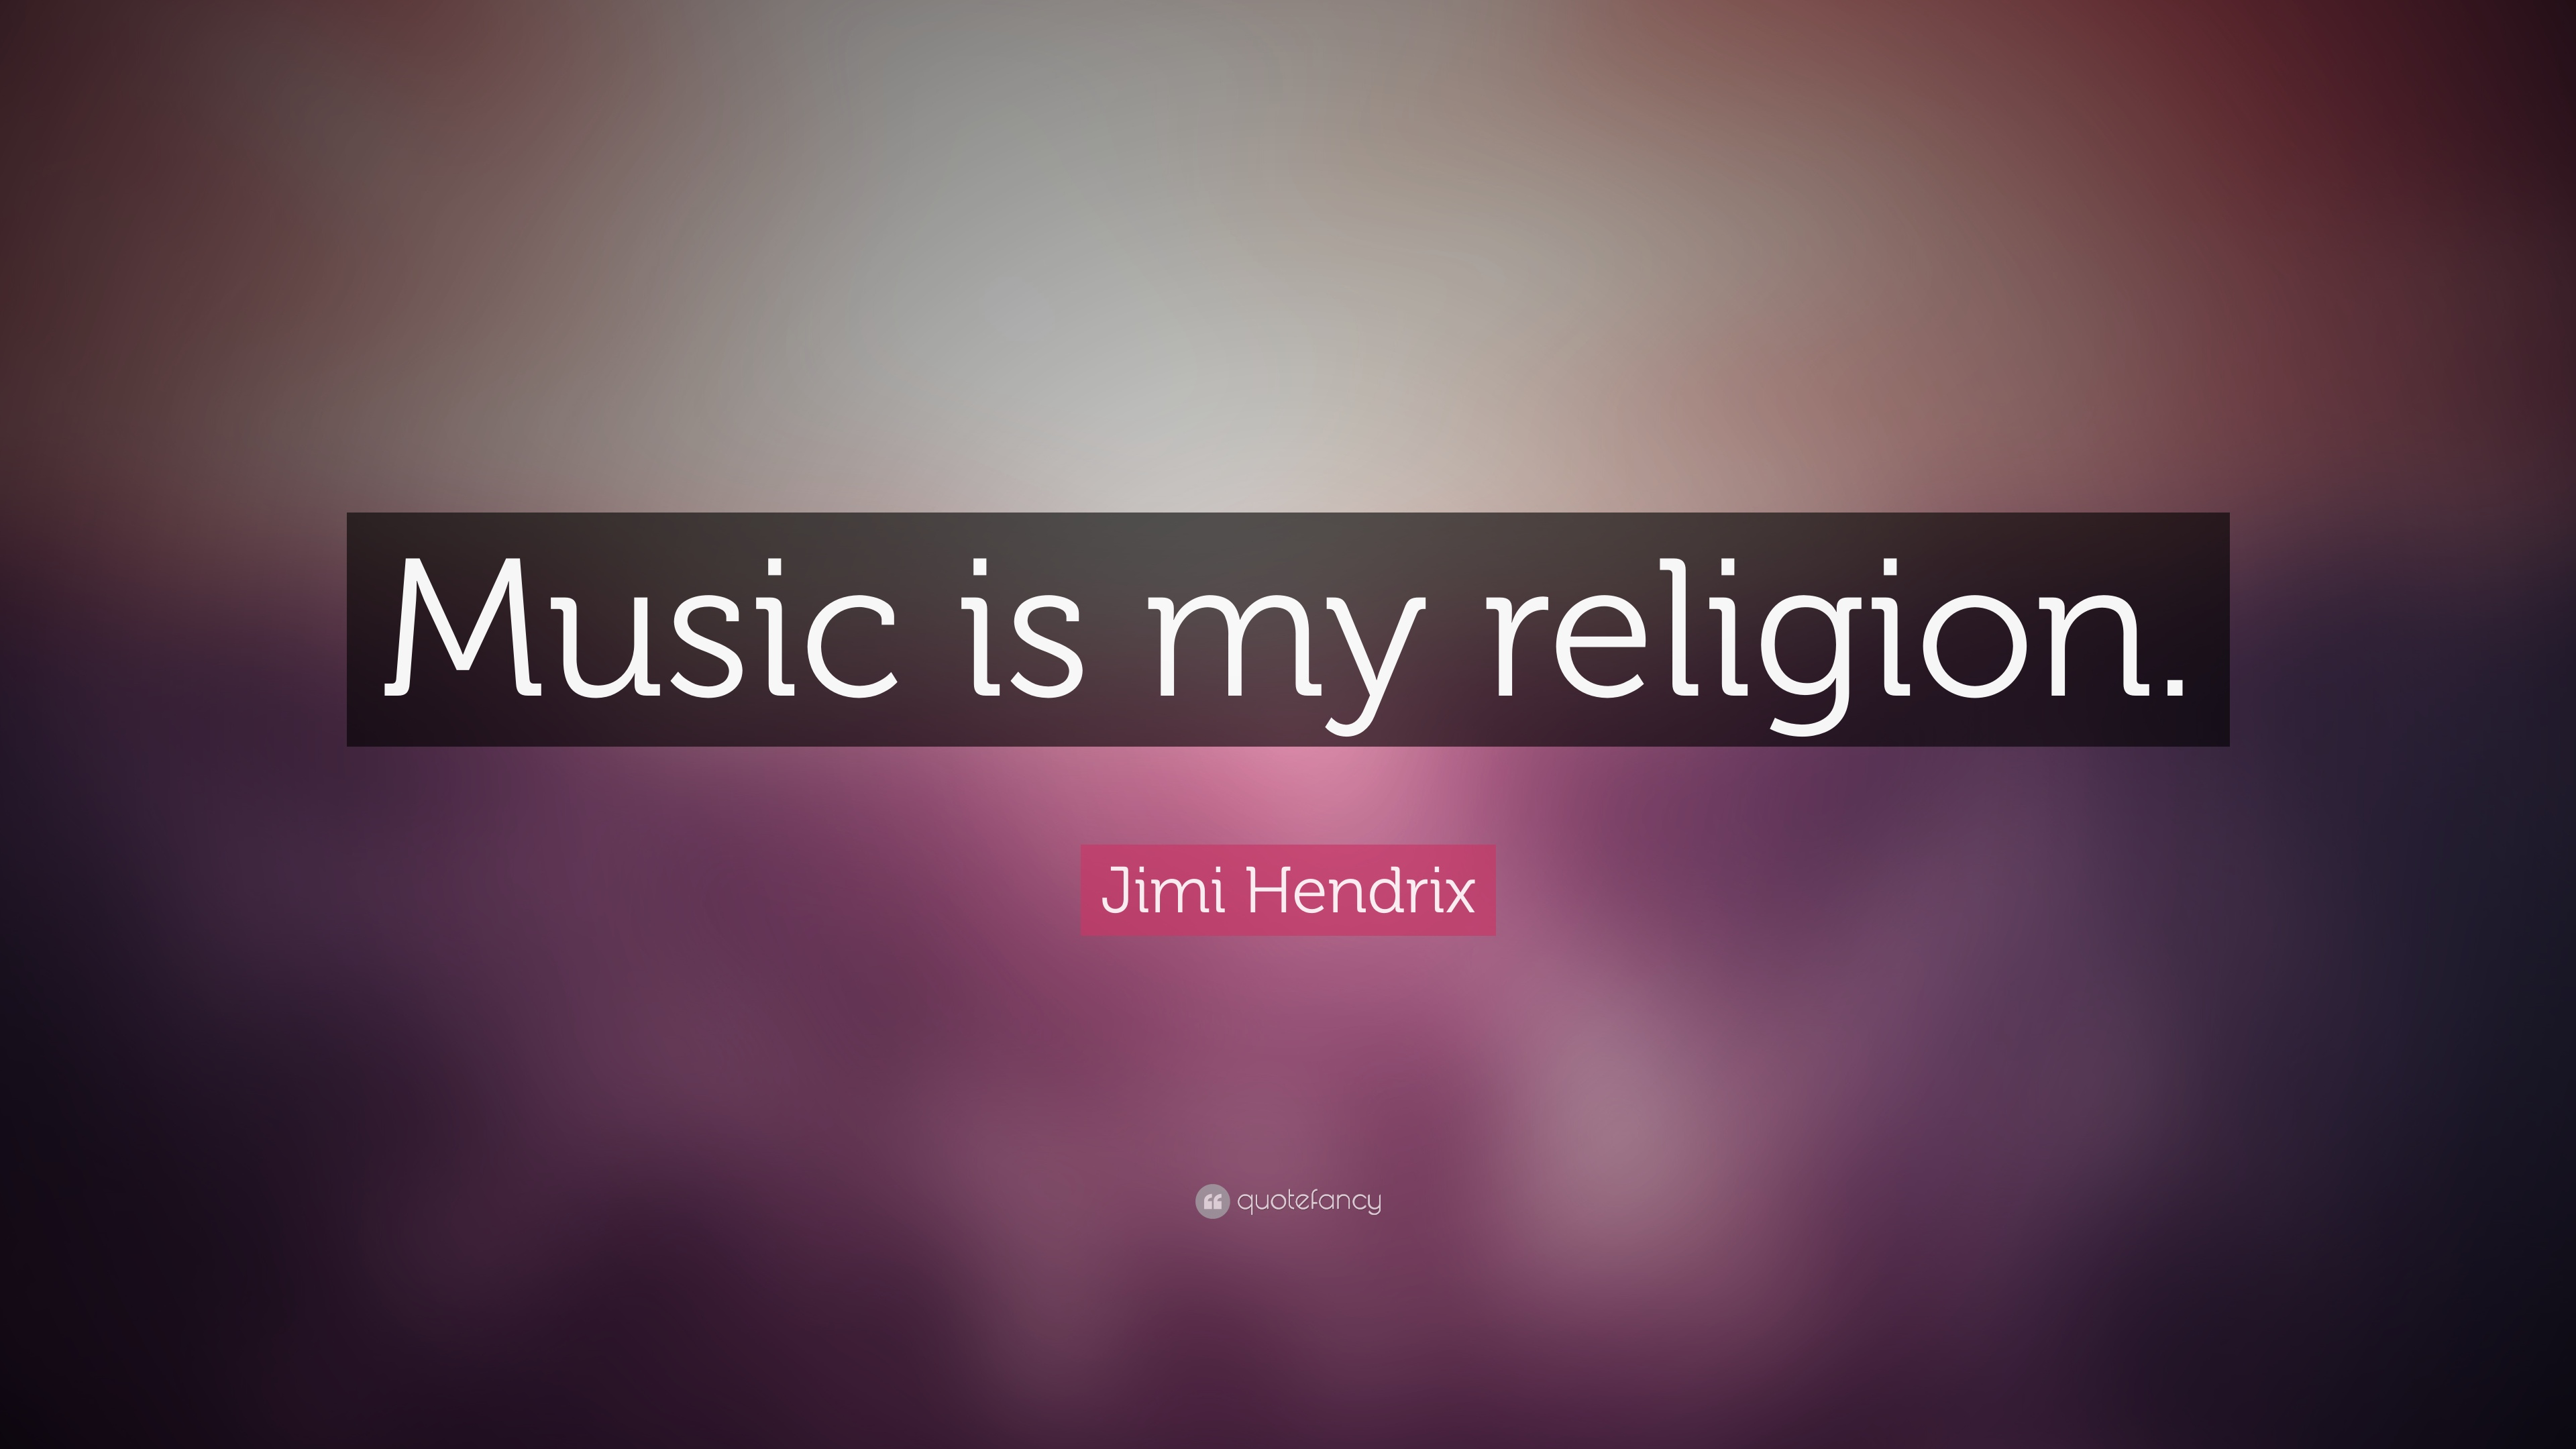 music quotes wallpapers - photo #9